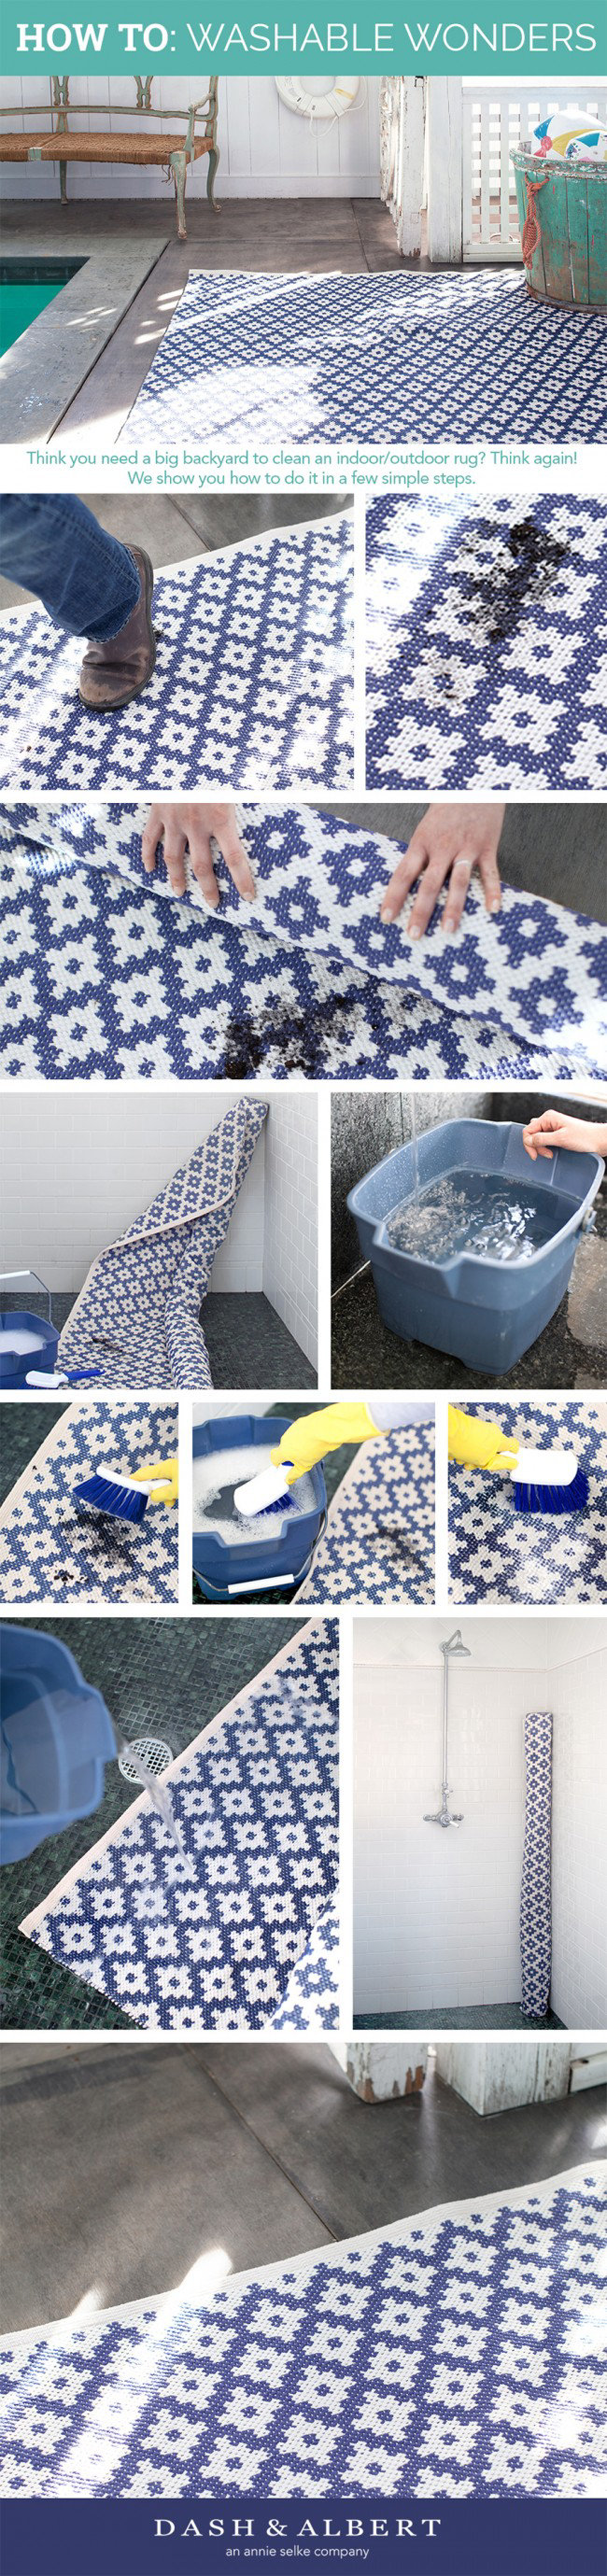 Super Easy To Clean An Indoor Outdoor Rug Even A Boy Like Our Samode Denim Shown Here Inside Your Shower Or Tub S How Apartment Dwelling